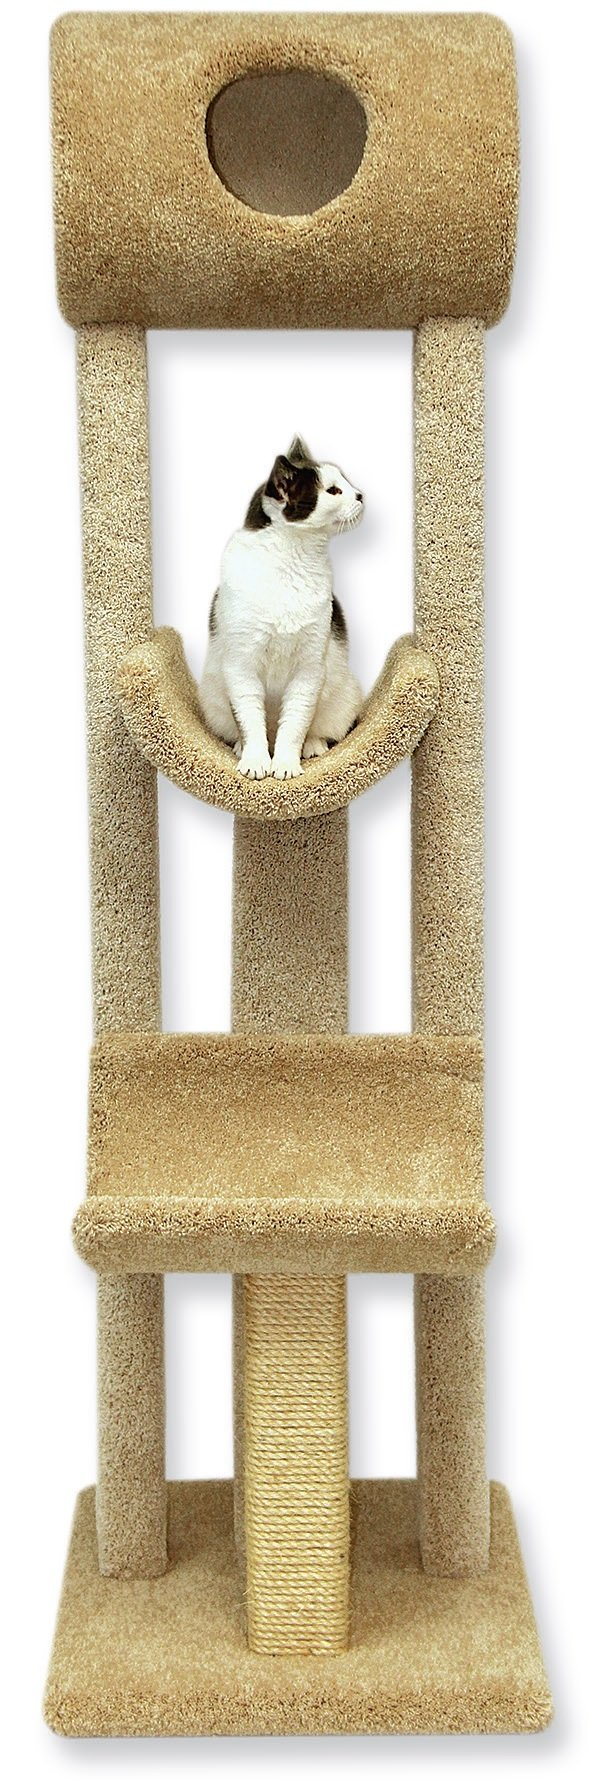 Beatrise Pet Products Kitty's Playground